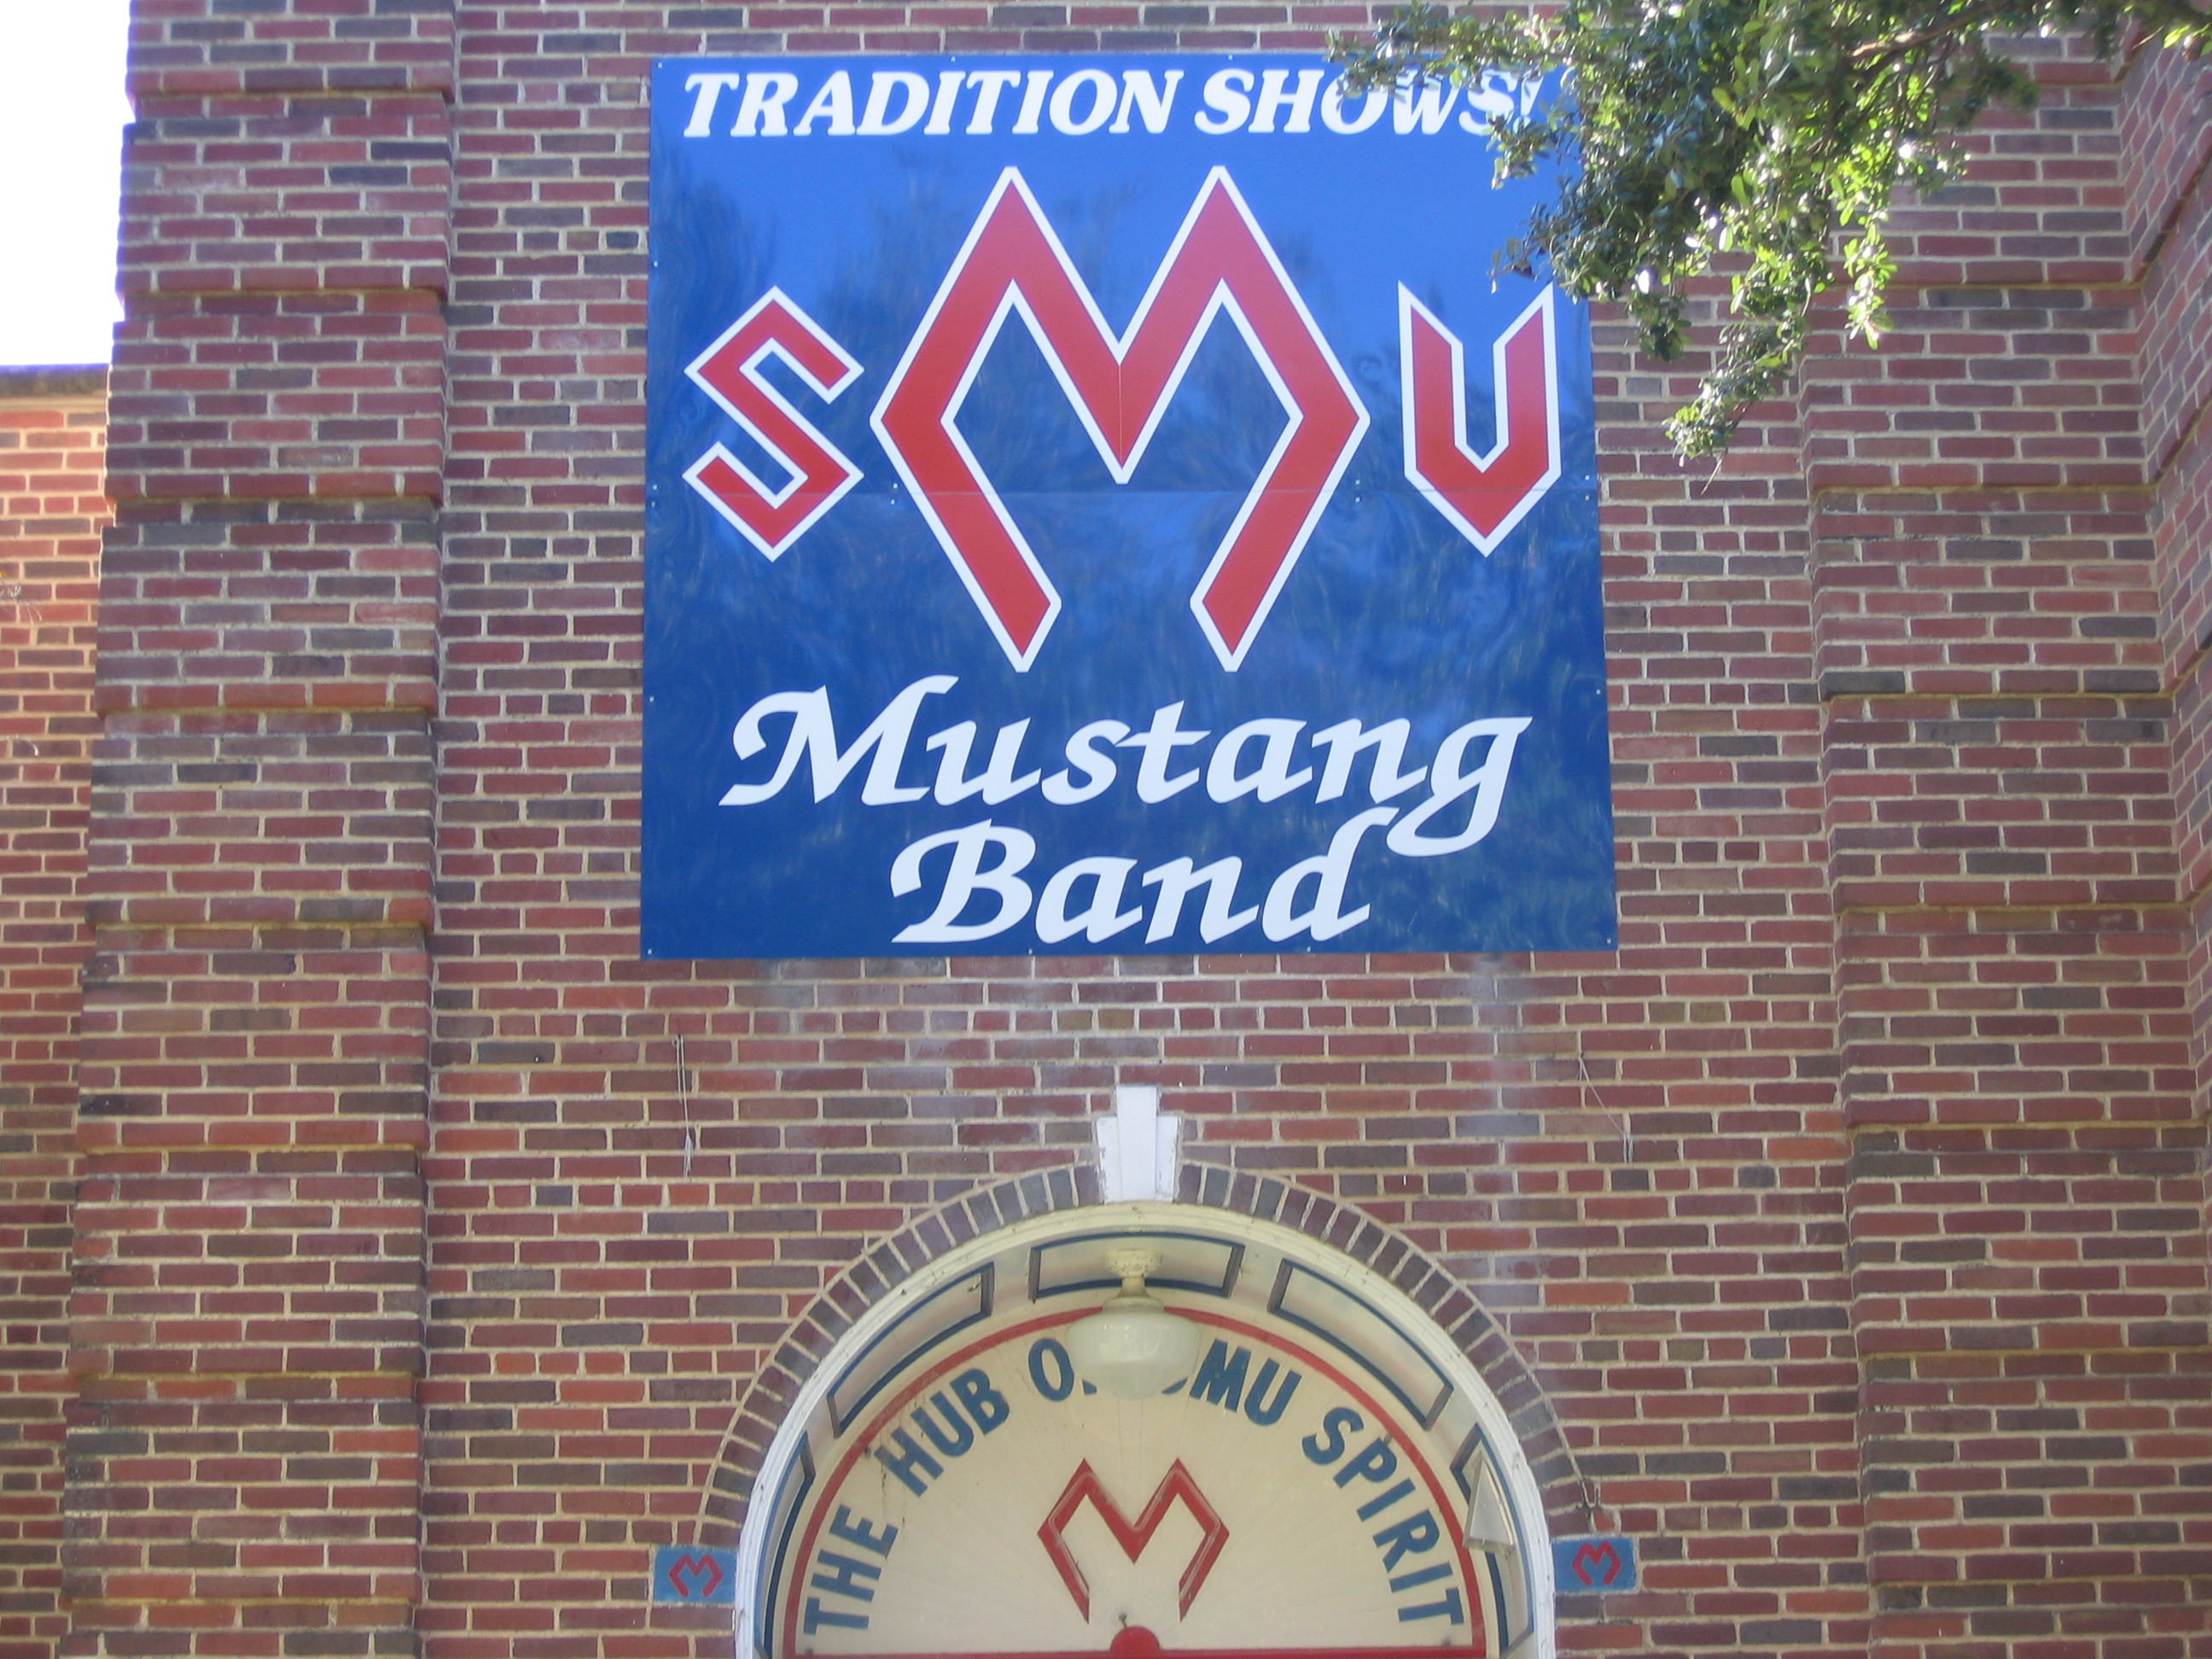 southern mehodist university football scandel The smu mustangs are the athletic teams that represent southern methodist university the mustangs were founded in 1911 and joined the southwest conference as part of the southern methodist university football scandal, smu receives the death penalty on its football program, shutting down.